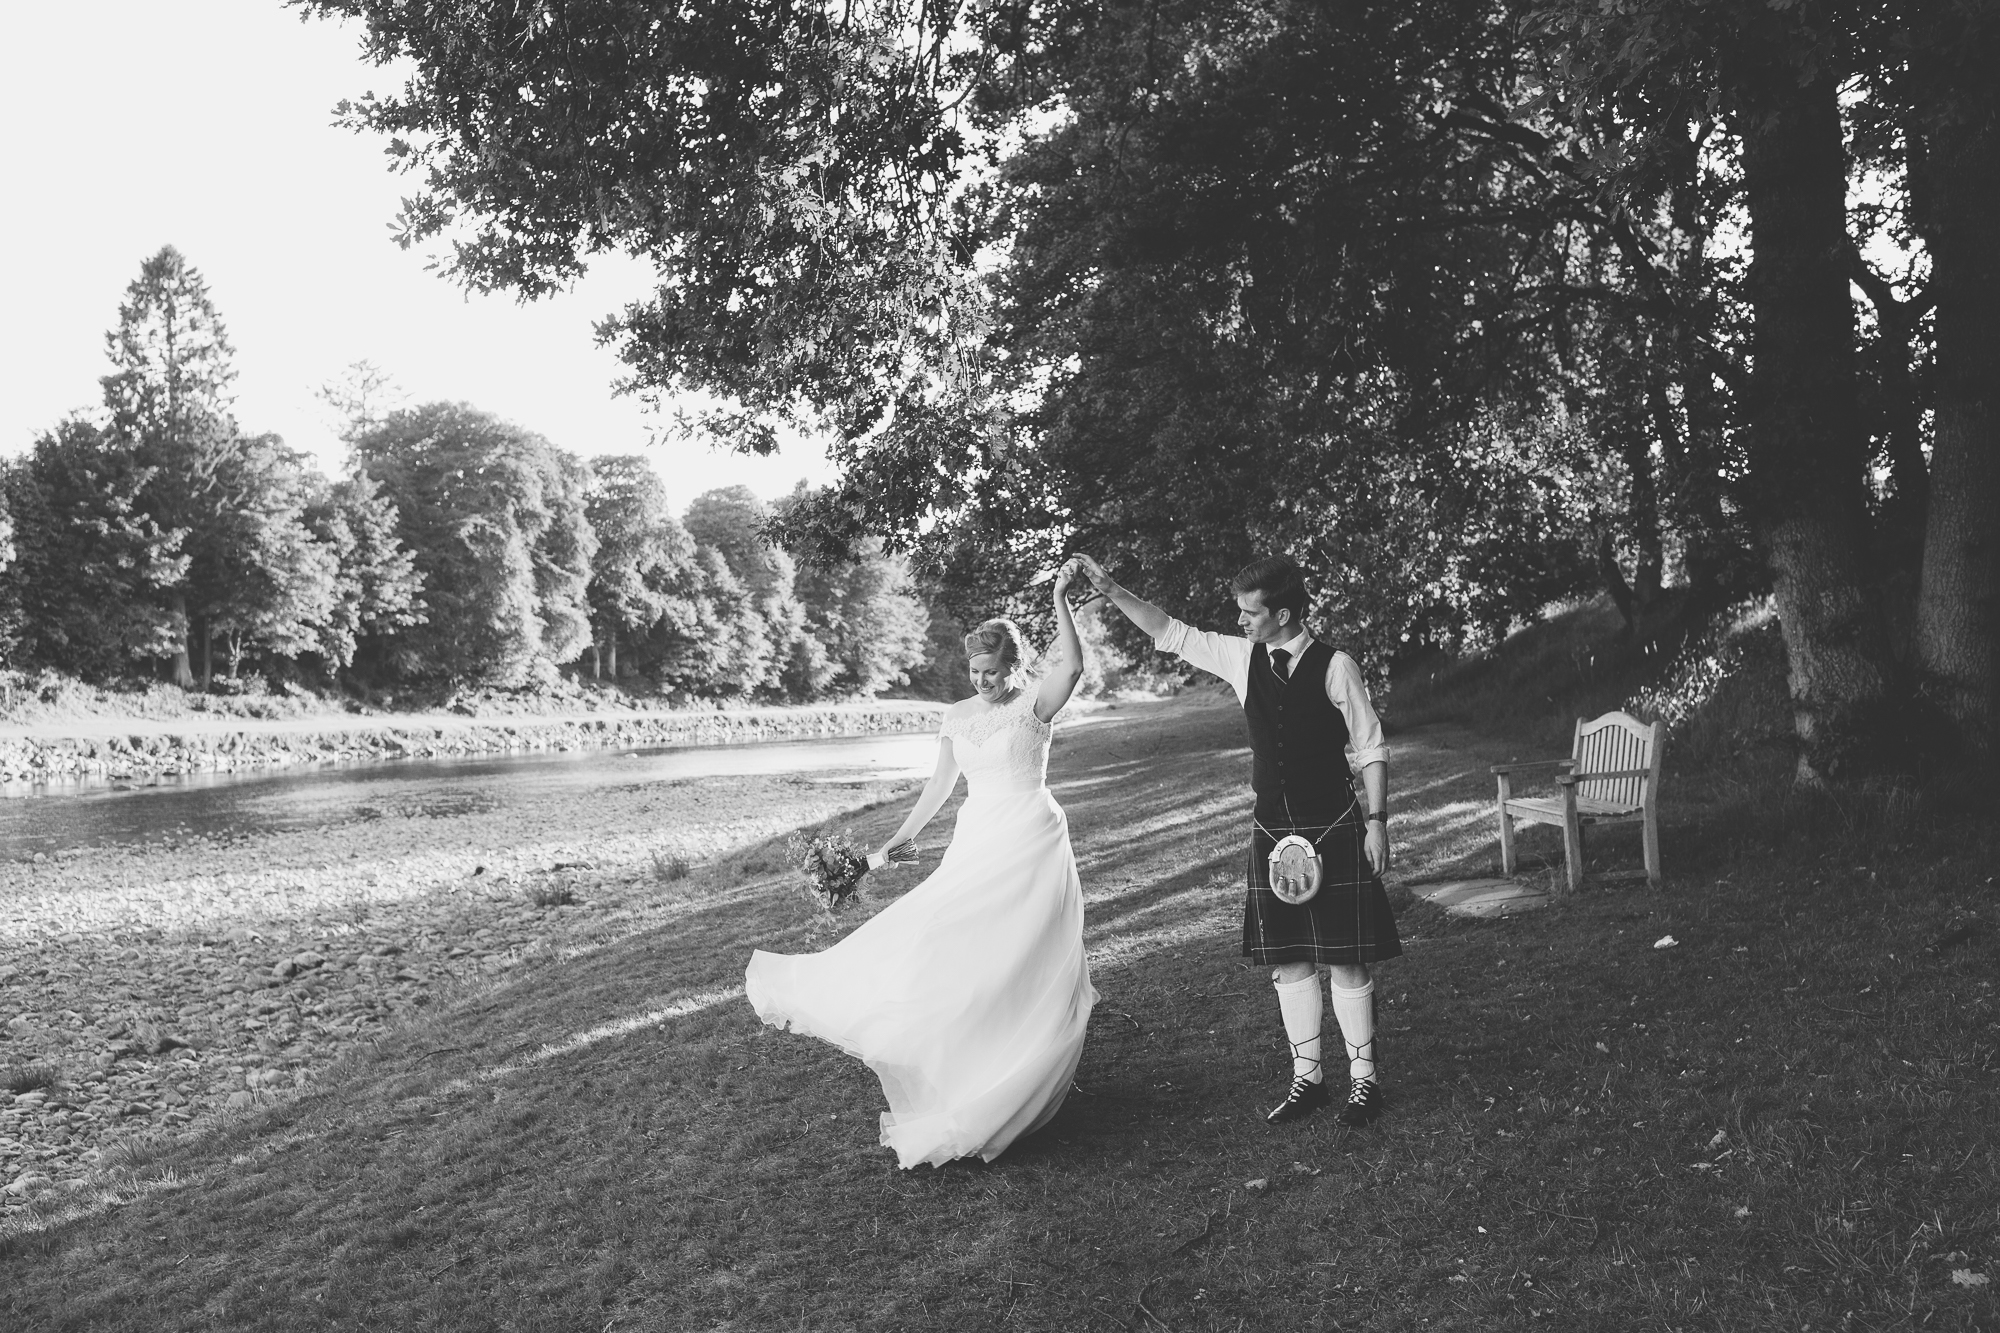 BANCHORYLODGEWEDDING (16 of 5).jpg